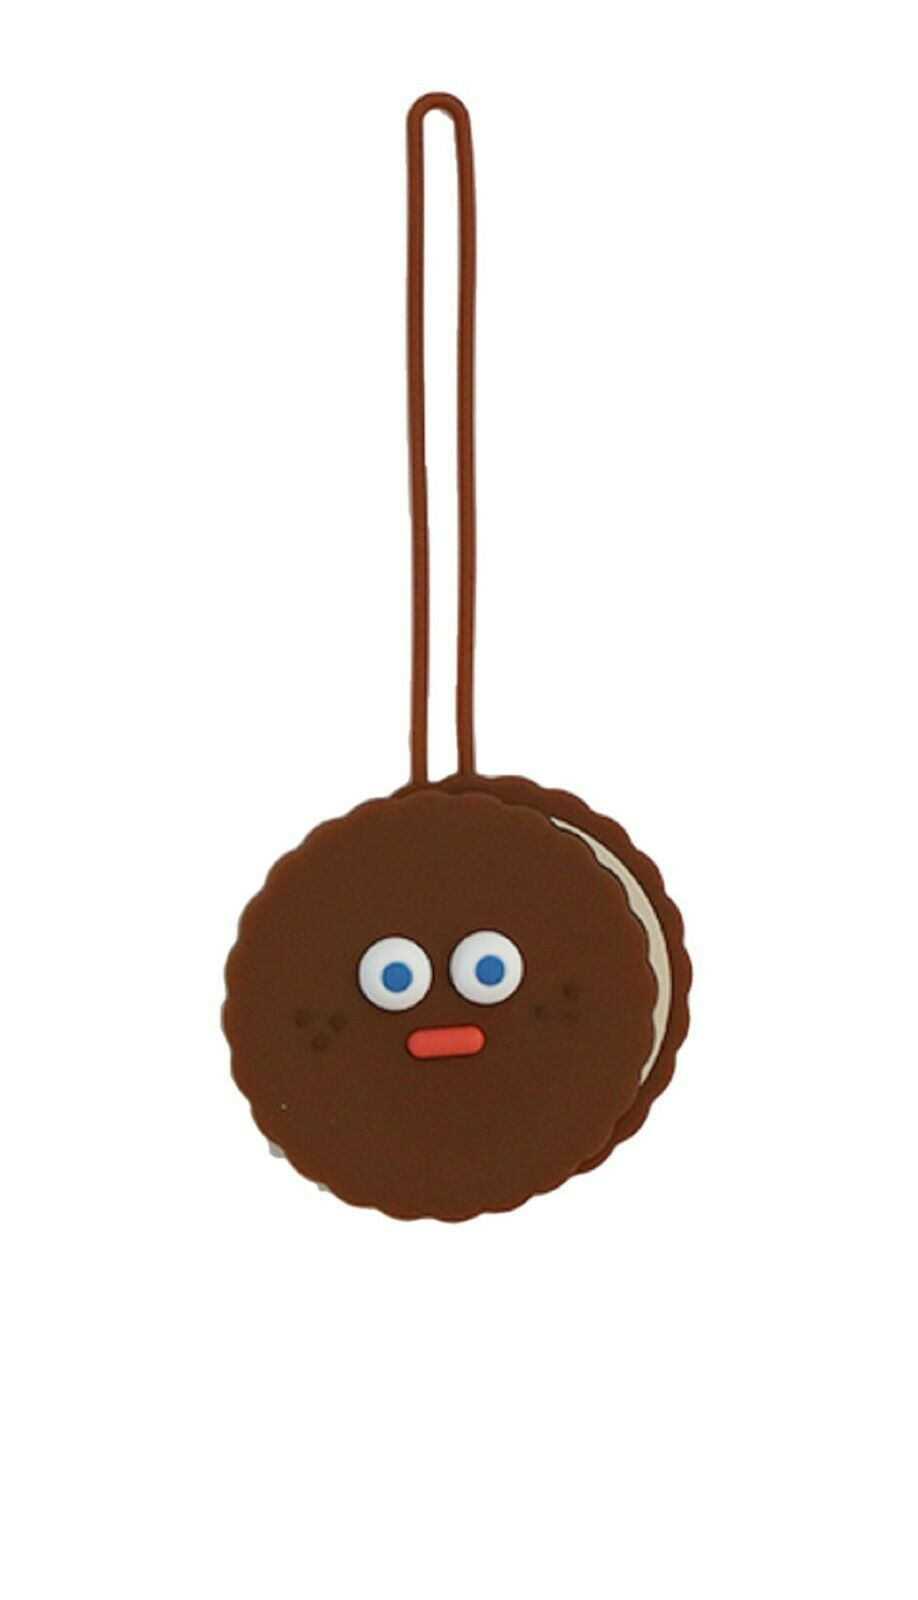 Brunch Brother Suitcase Luggage Tag Baggage Travel Bag Tag (Chocolate Cookie)